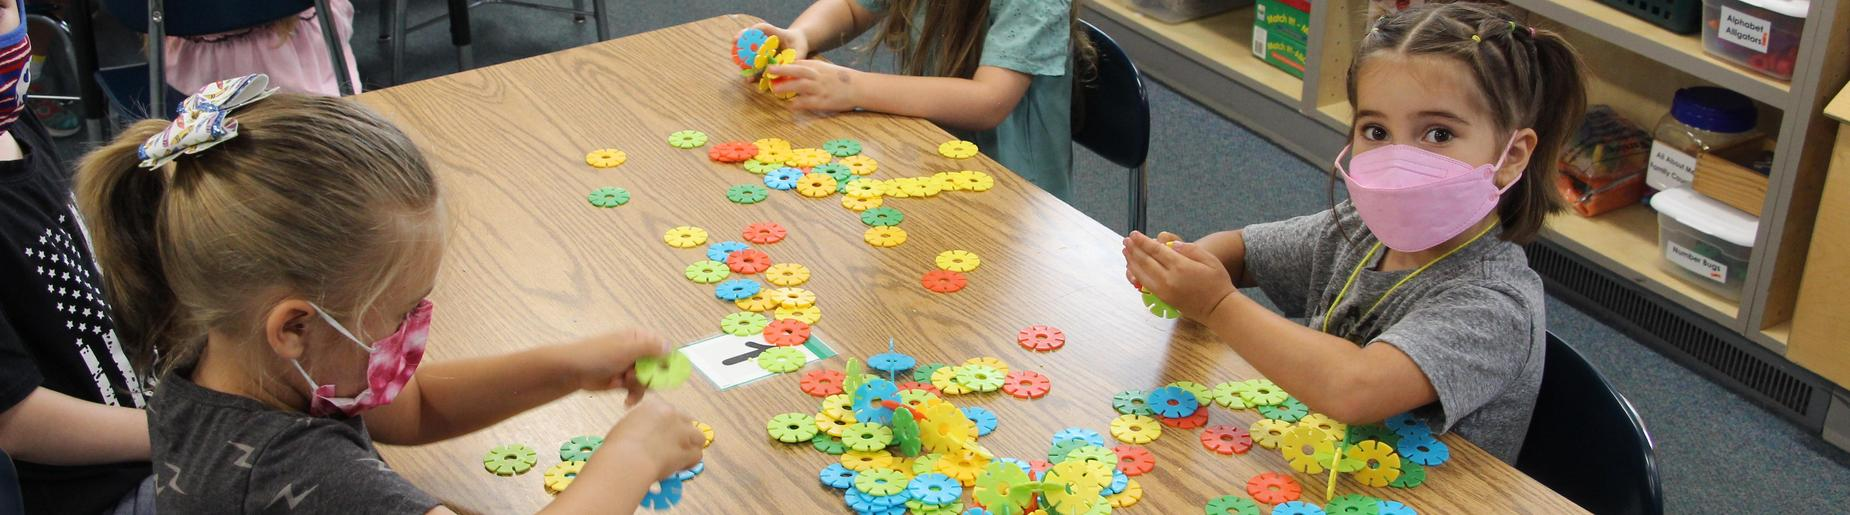 Richard Mann Elementary Students Learn by Playing